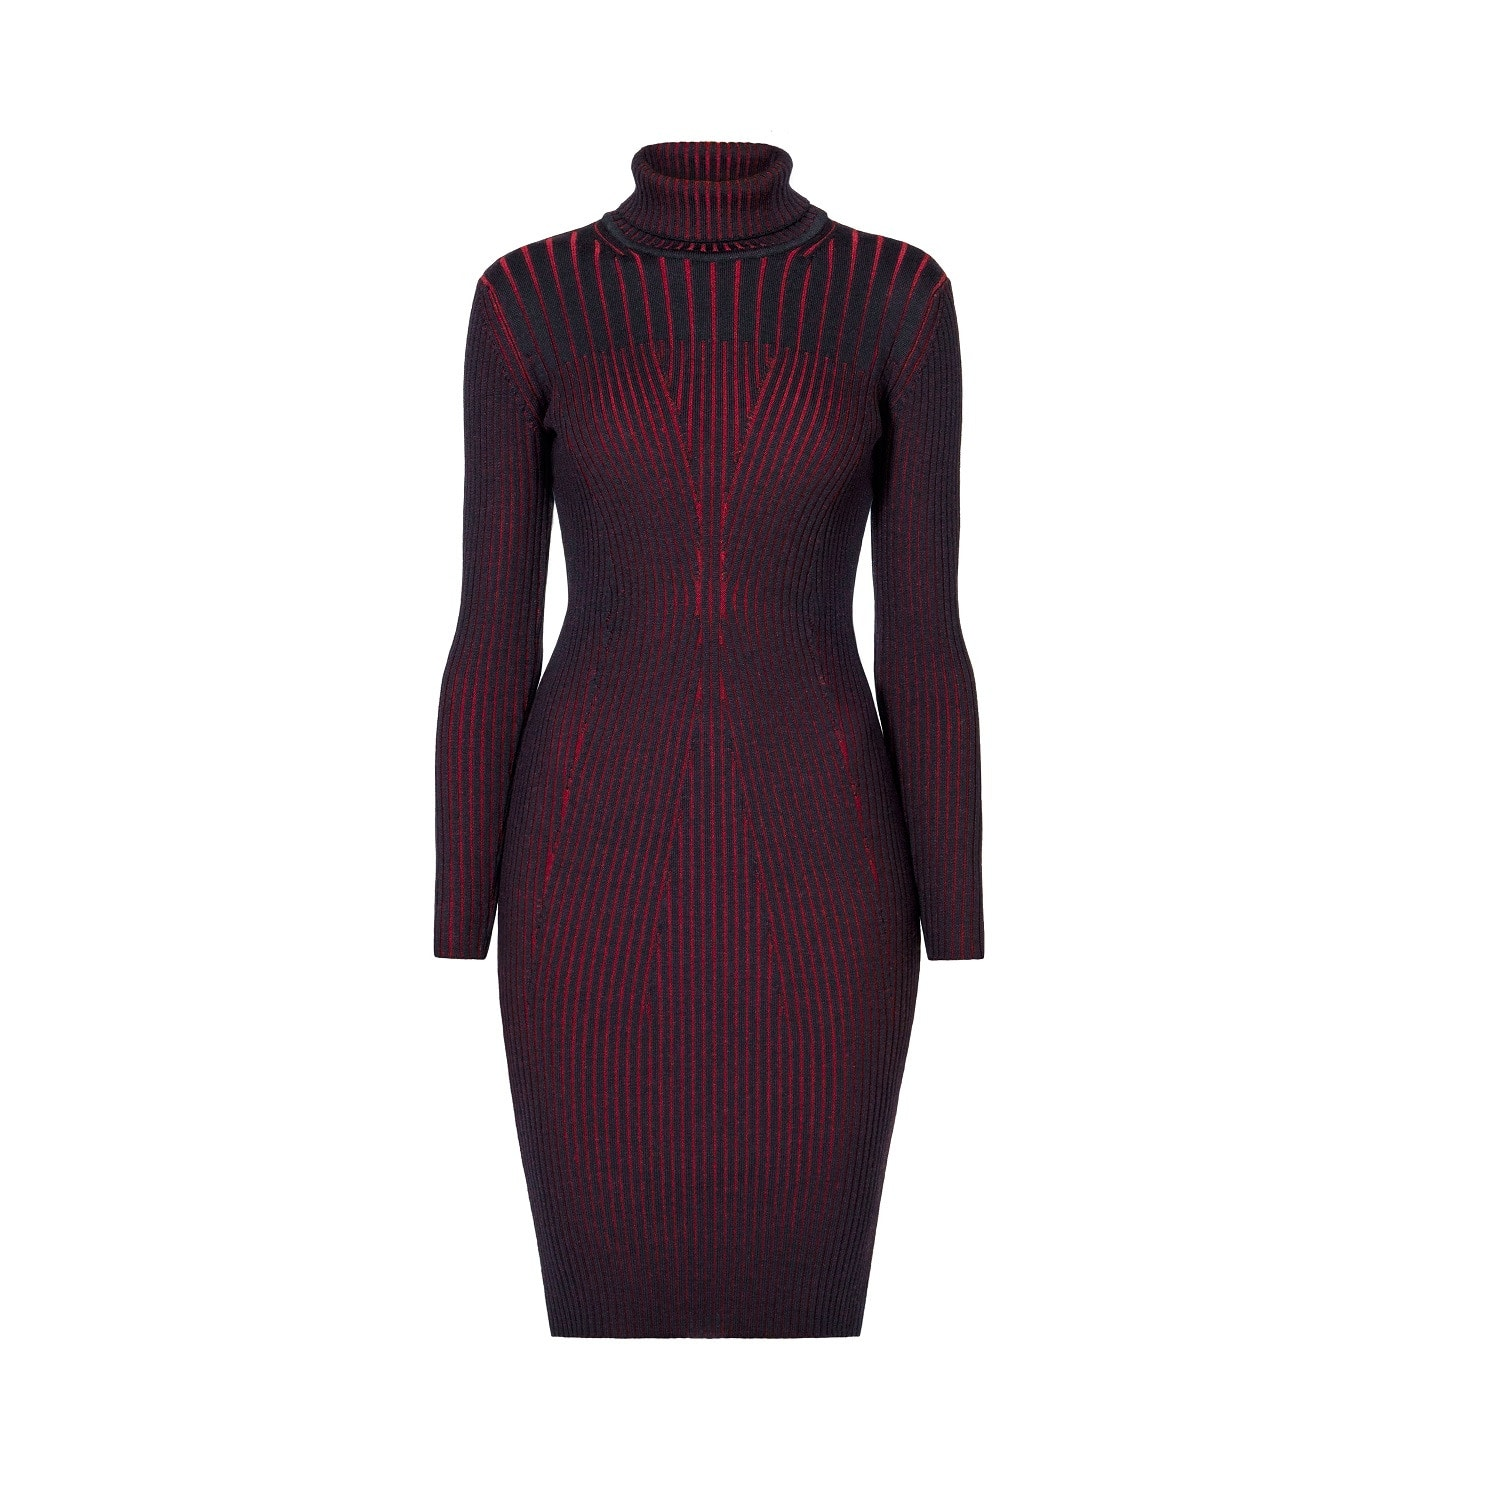 Rumour London - Cleo Black Two-Tone Ribbed Knit Dress